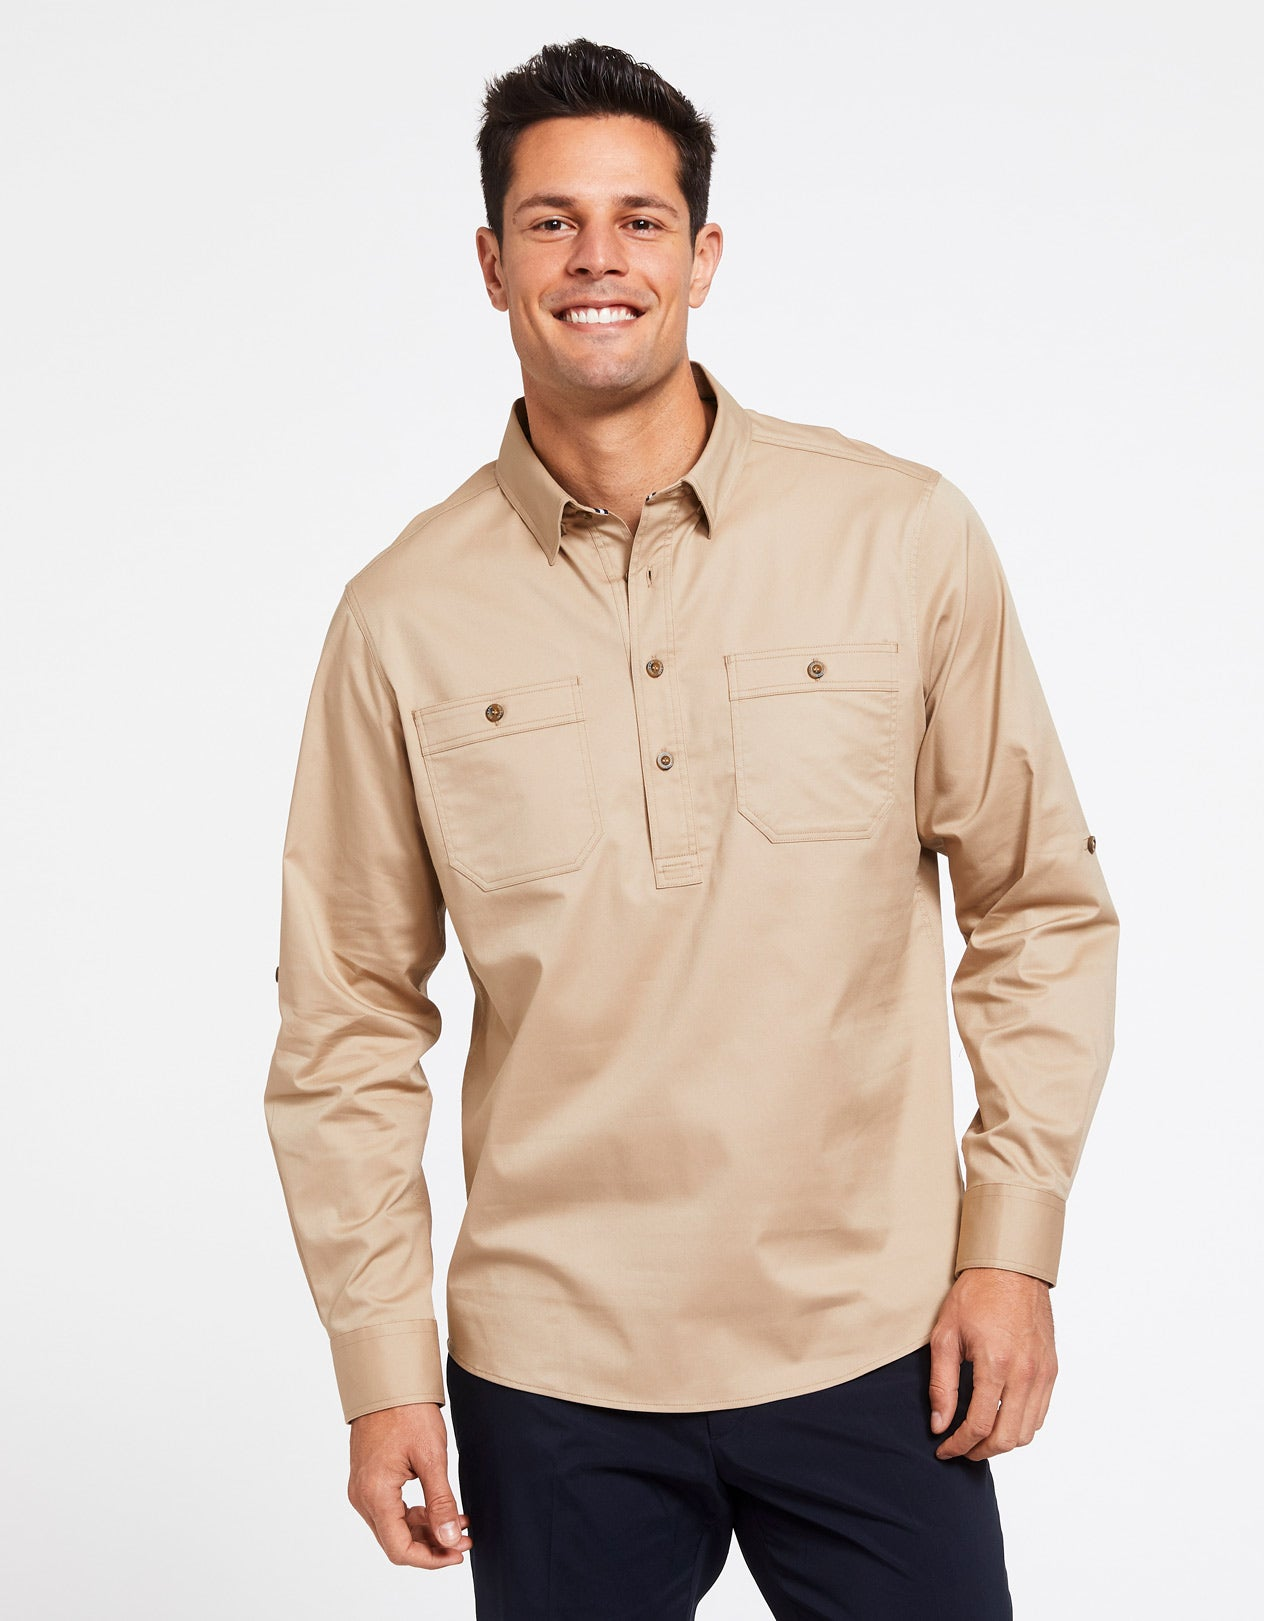 Solbari Sun Protection Men's UPF50+ Outback Half Placket Shirt in Safari Technicool Collection